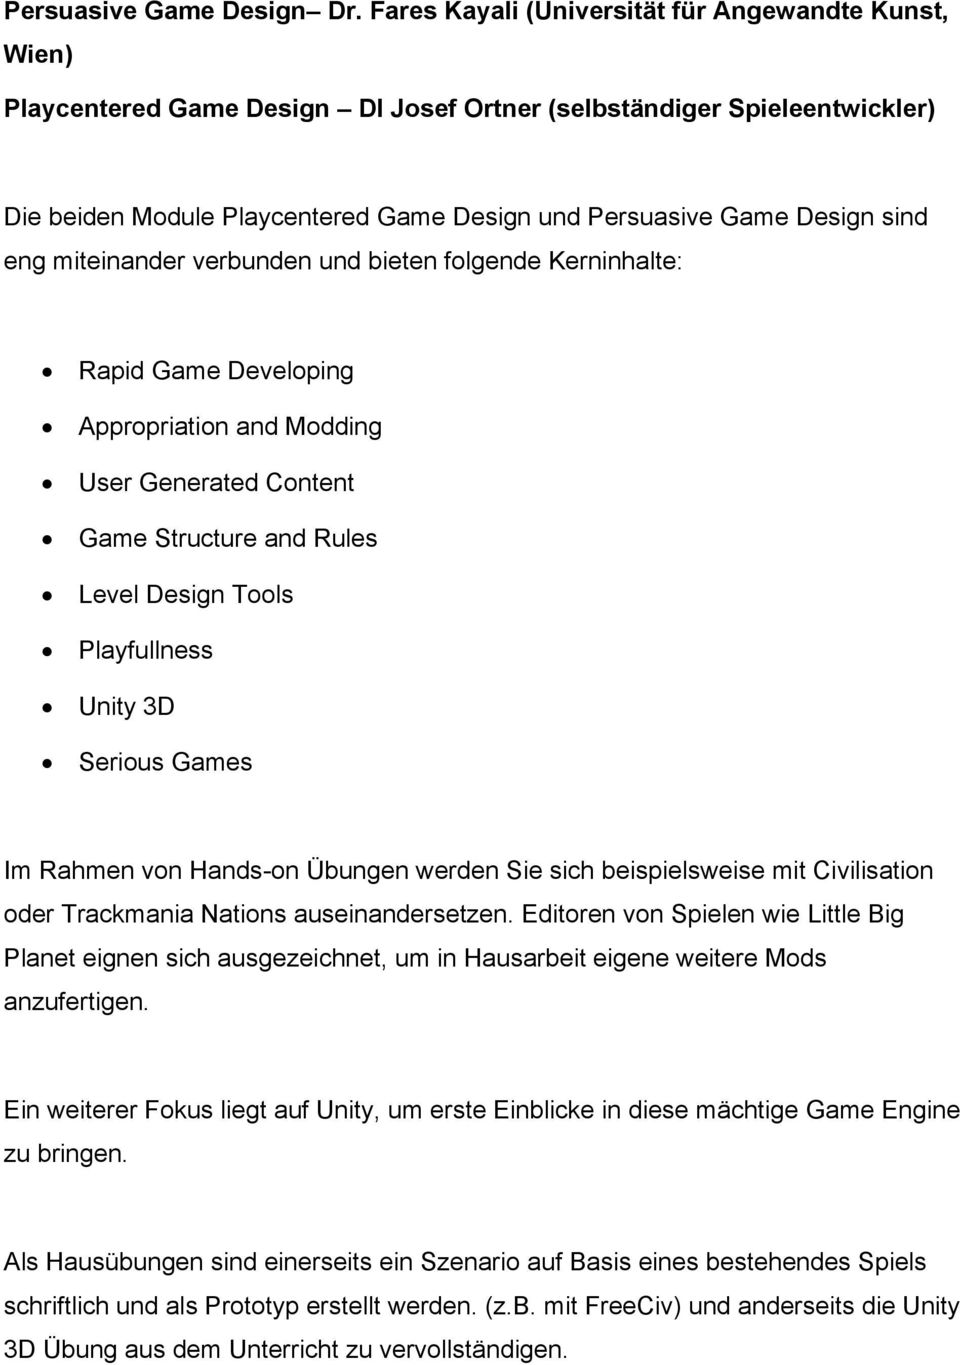 sind eng miteinander verbunden und bieten folgende Kerninhalte: Rapid Game Developing Appropriation and Modding User Generated Content Game Structure and Rules Level Design Tools Playfullness Unity